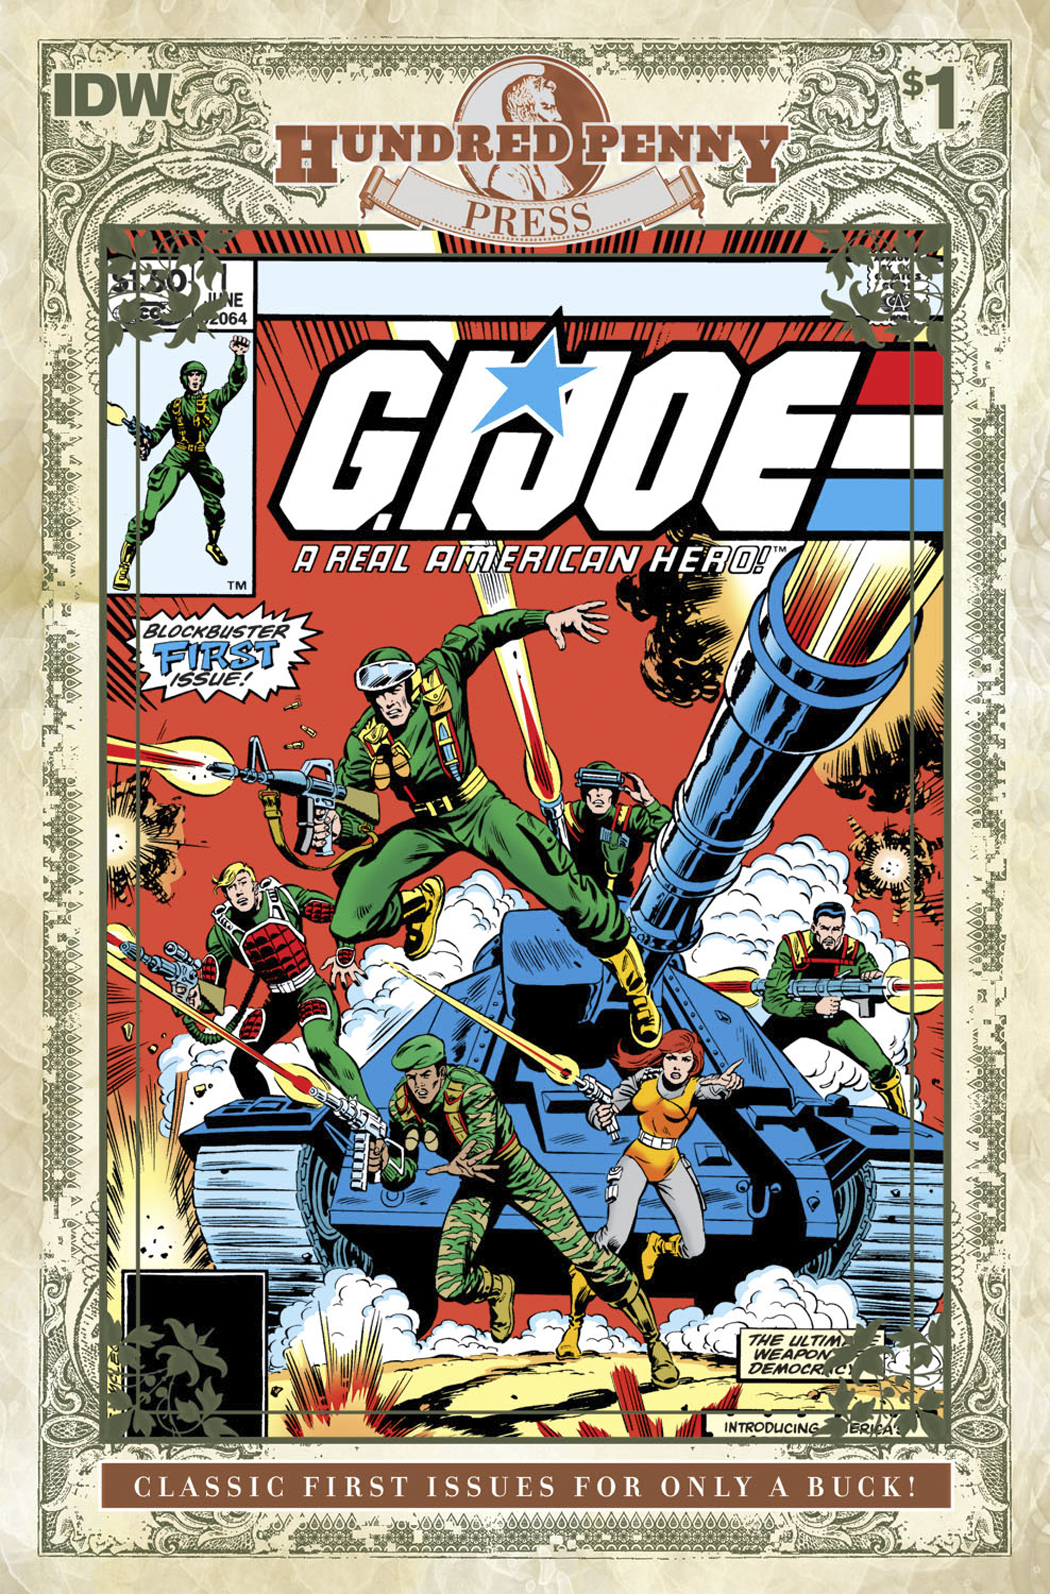 GI JOE A REAL AMERICAN HERO 1982 #1 100 PENNY PRESS ED